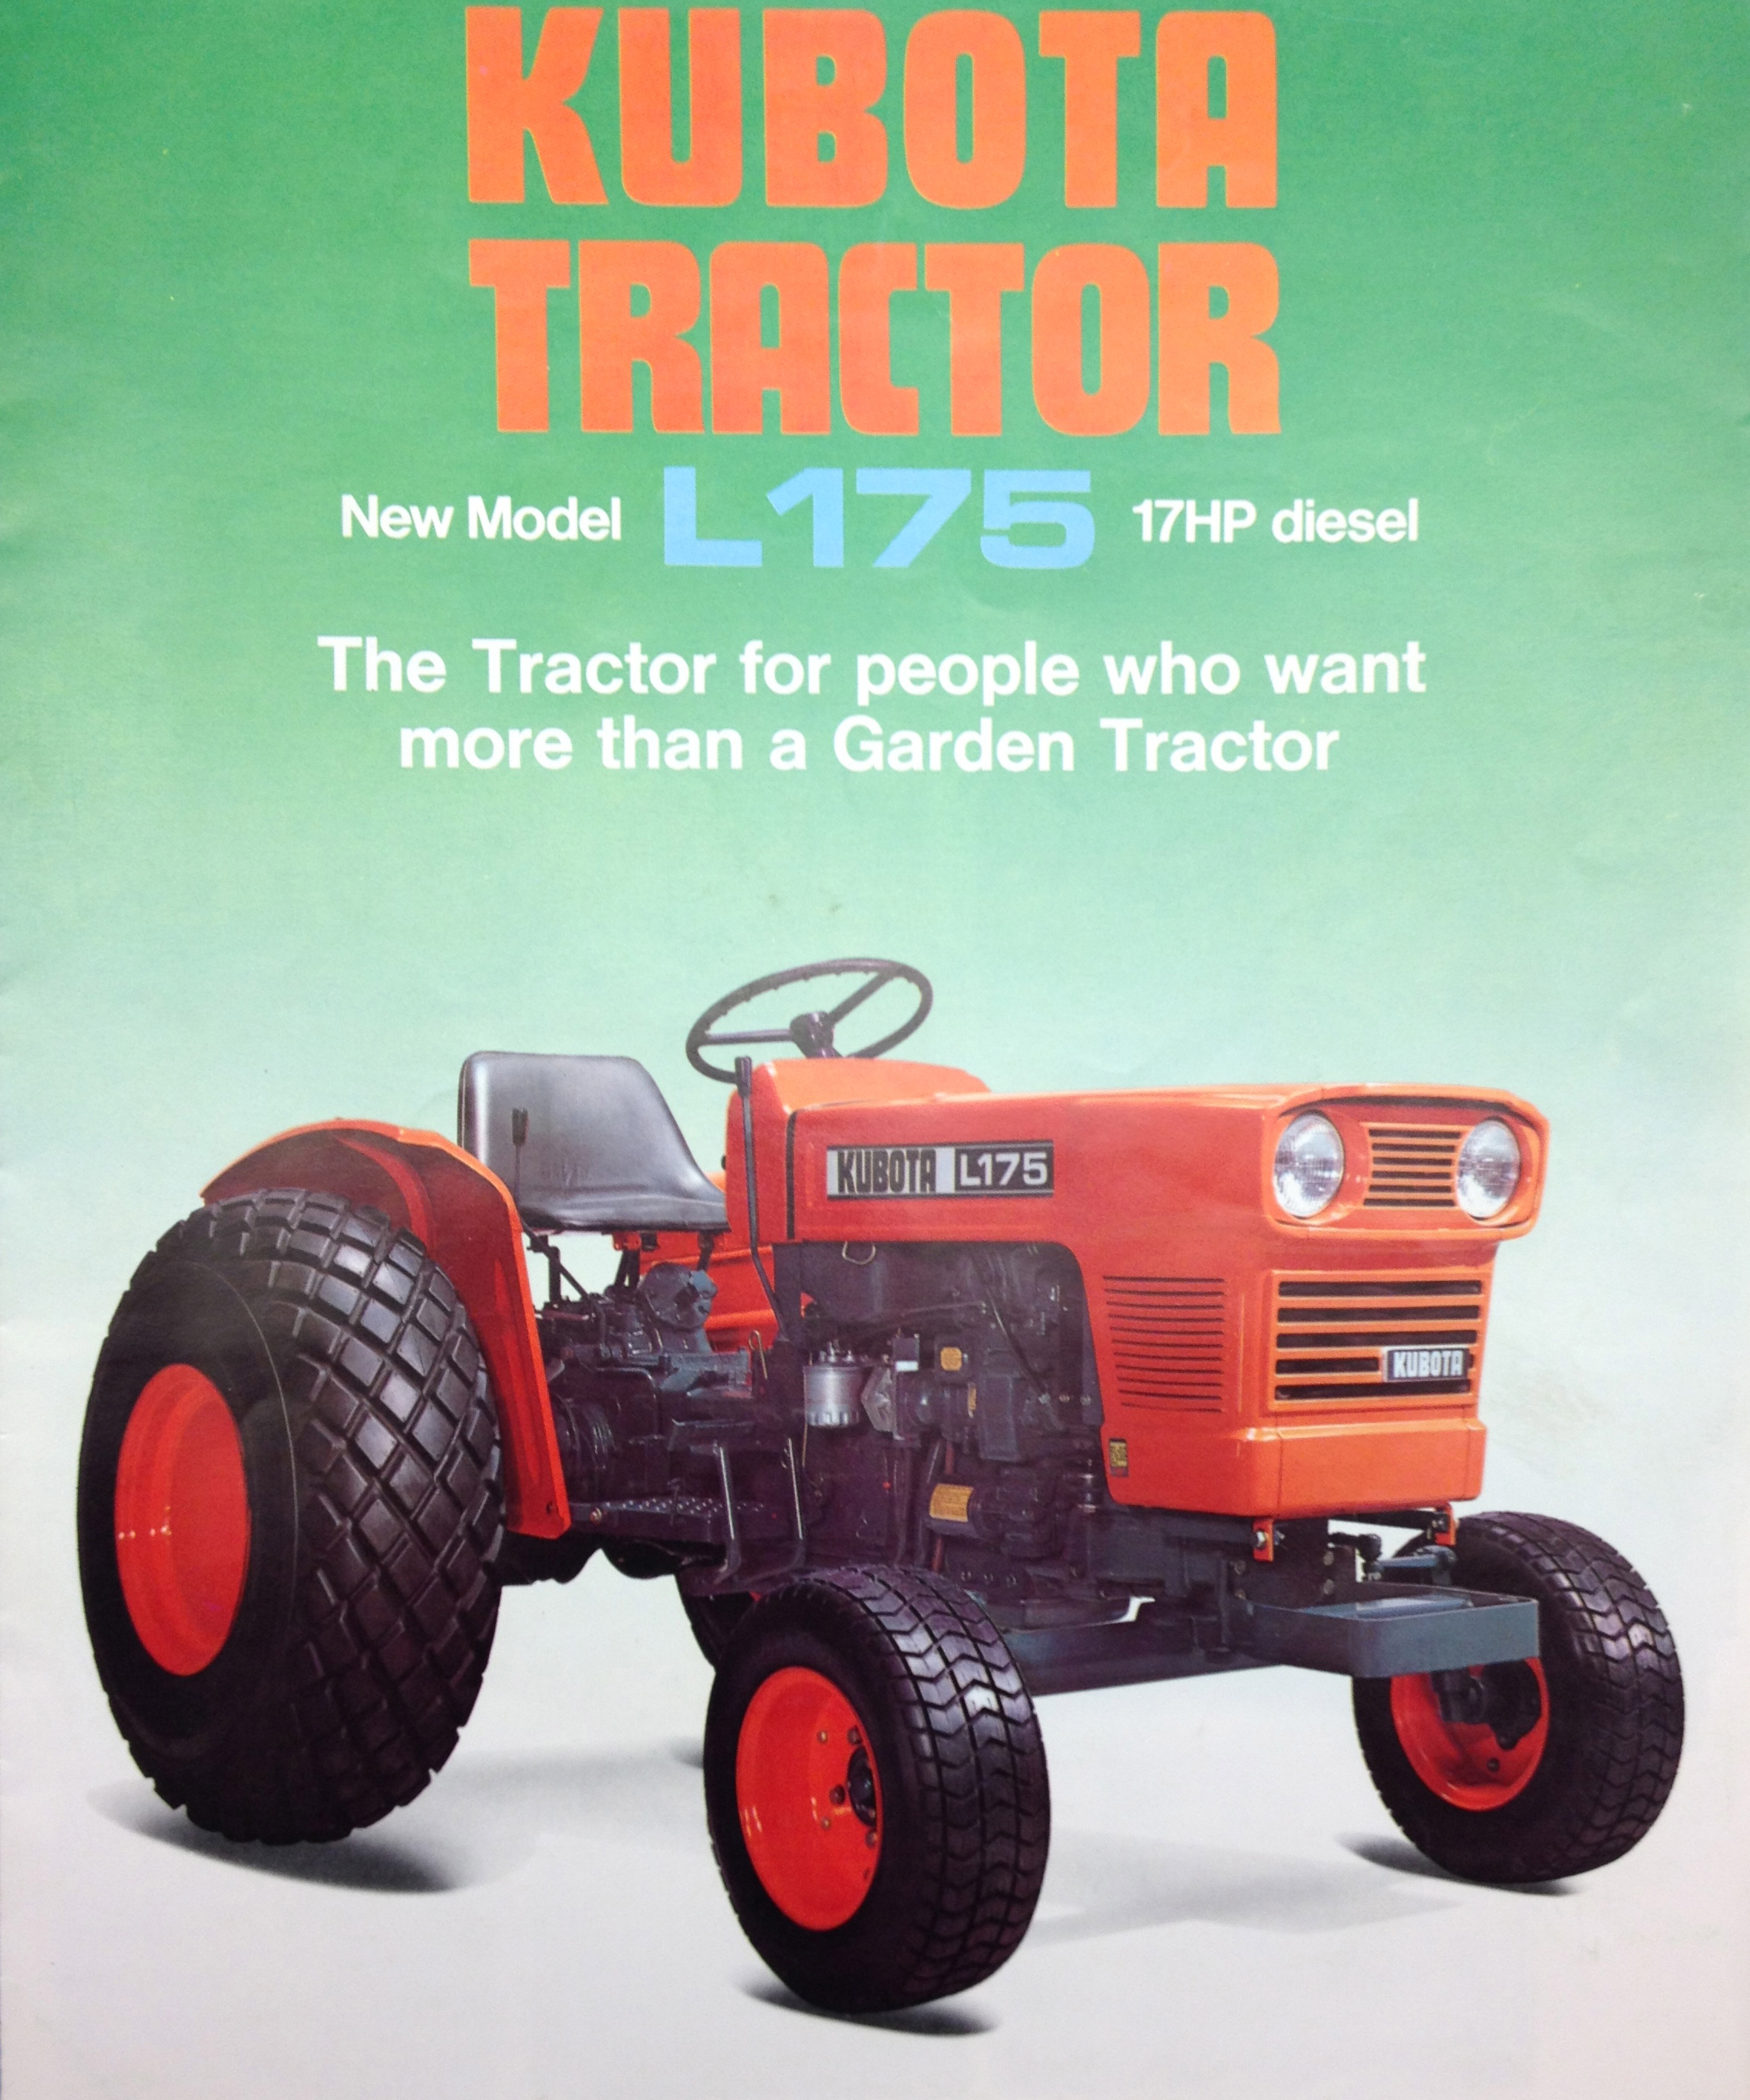 This is an example of the early Kubota literature around the time Humphreys' added the product line.